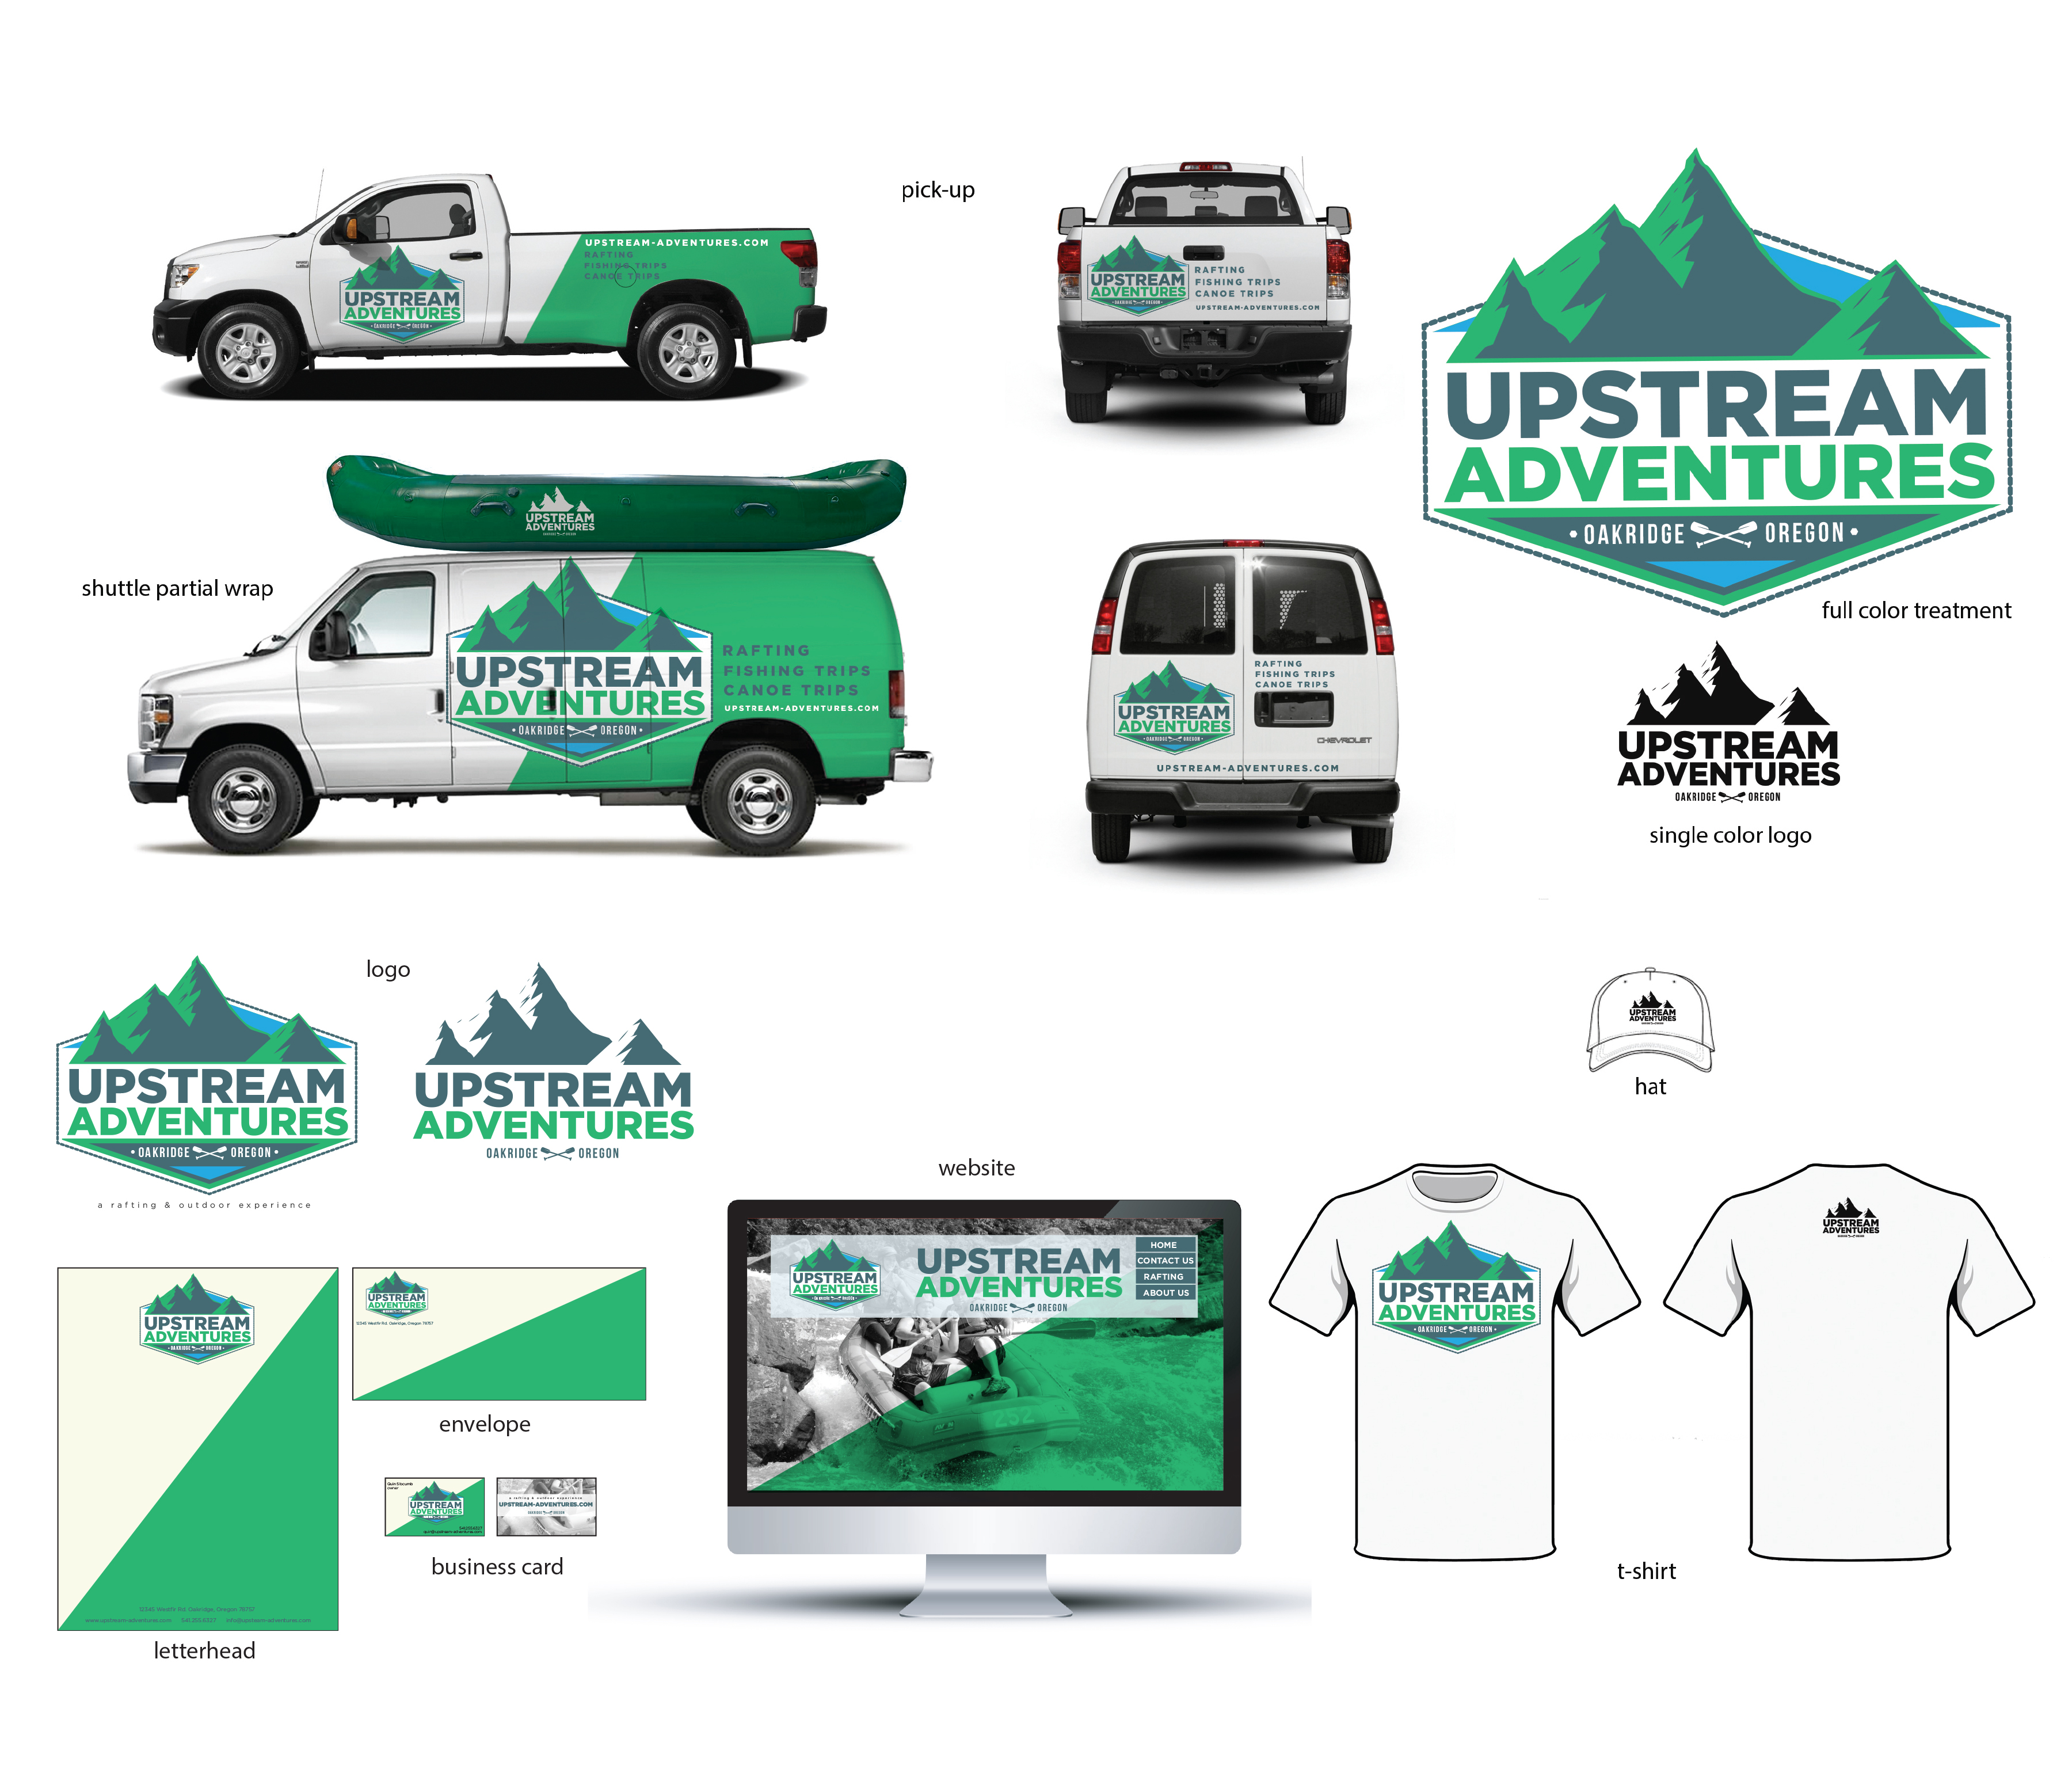 upstream adventures branding